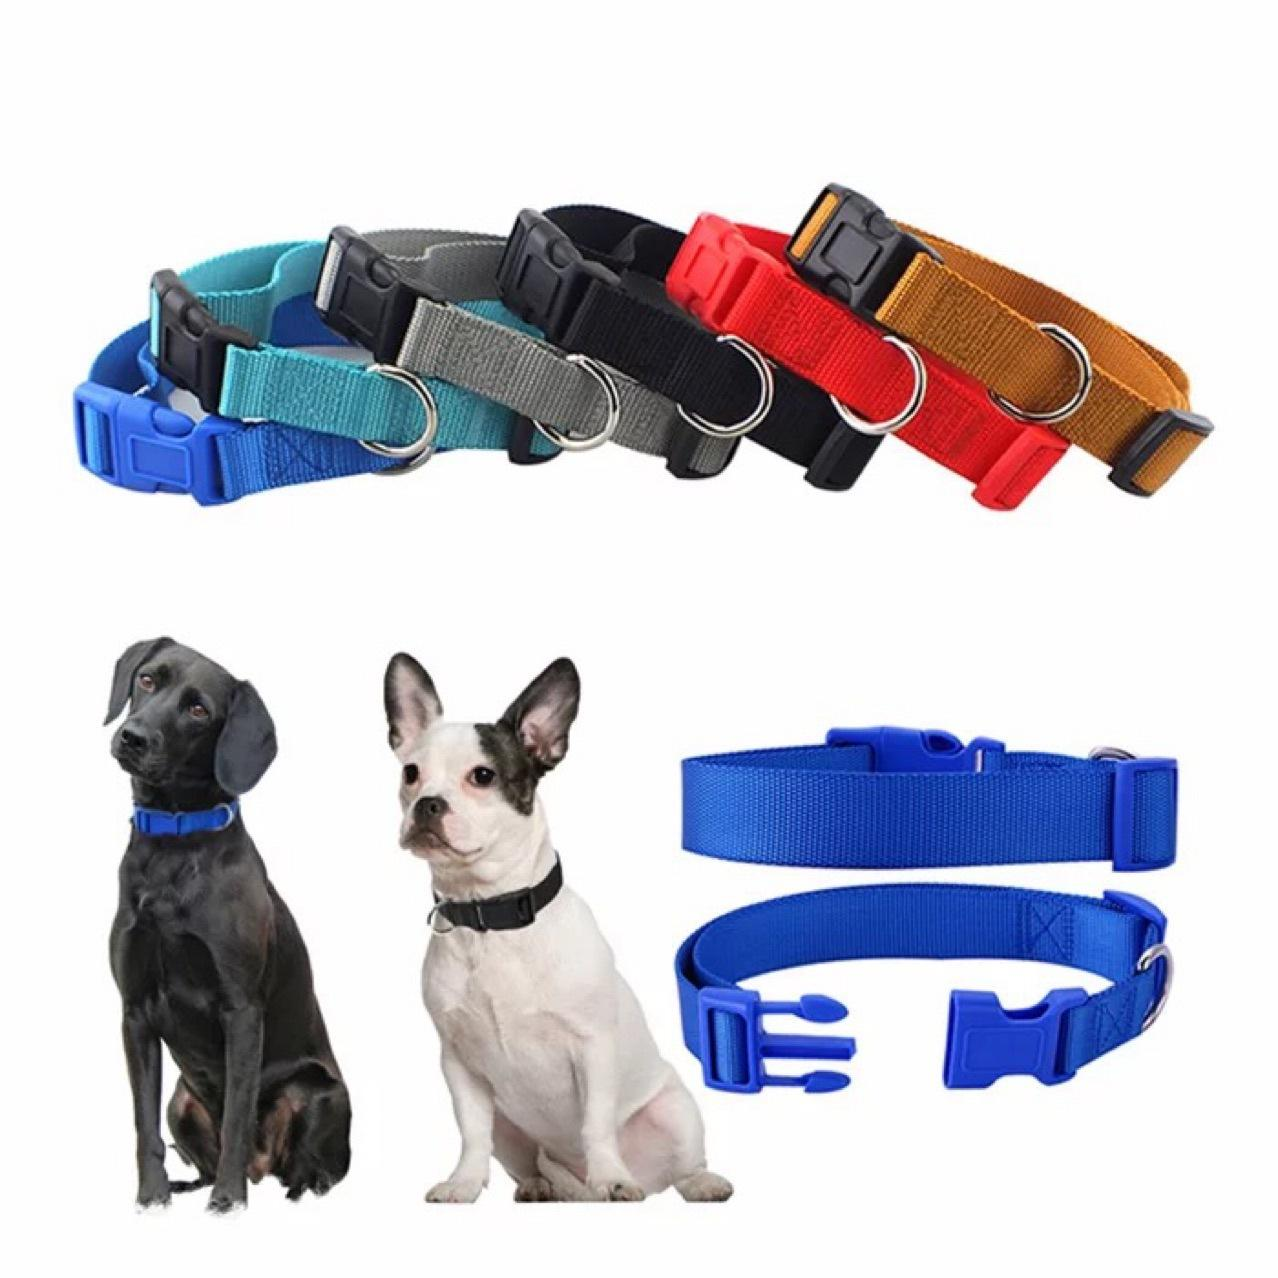 Pet Dog Collar Classic Solid Basic Polyester Nylon Dog Collar With Quick Snap Buckle Optional Collars Pull Rope 9 colors w-00682